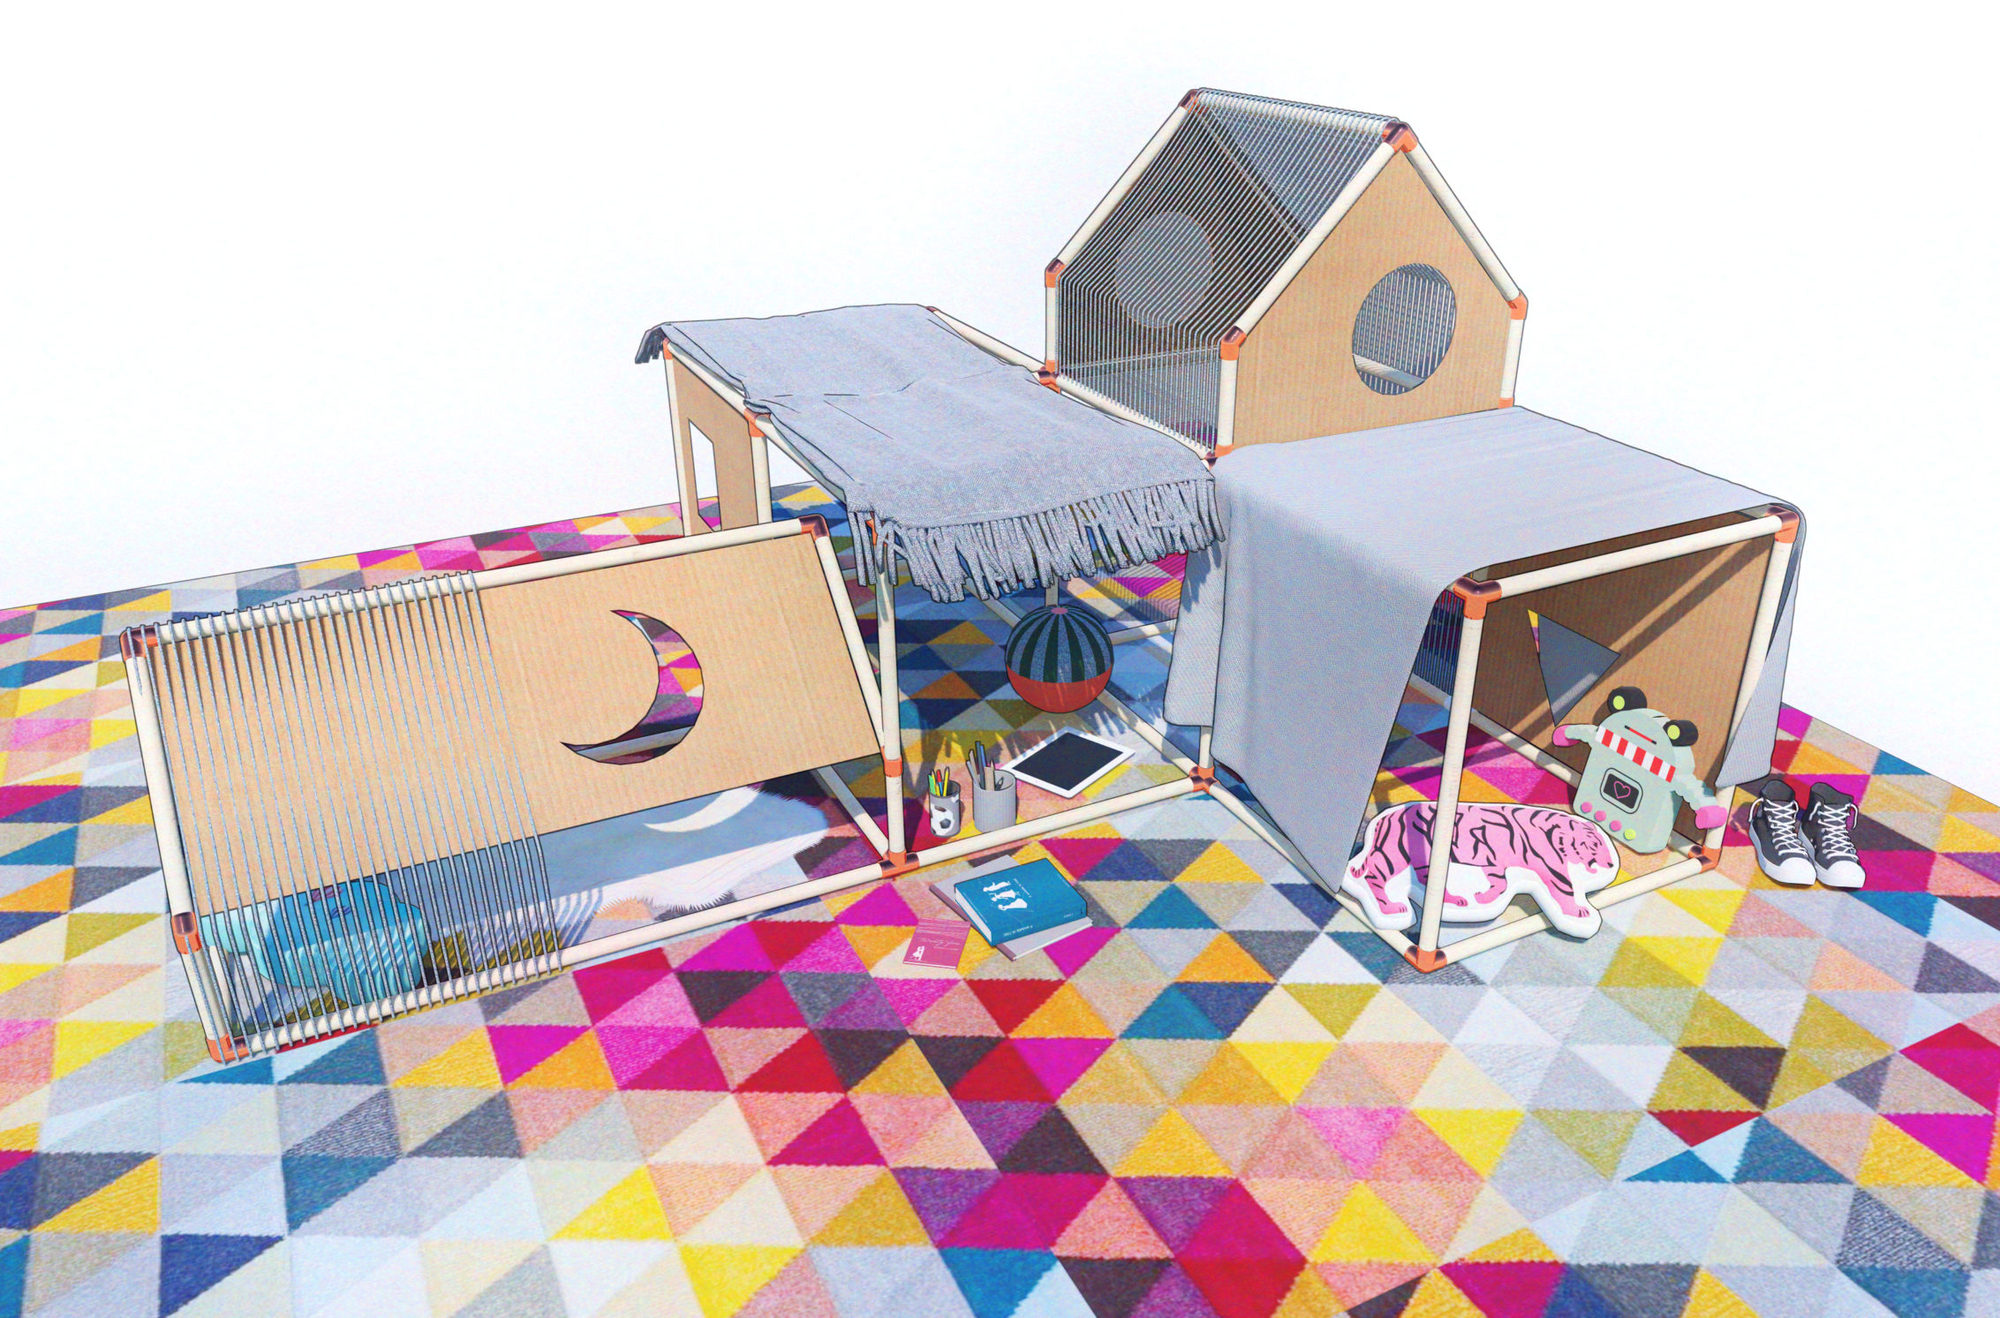 K 12 Education Team At Perkins And Will Designs Blanket Fort For Kids During Covid 19 Archdaily